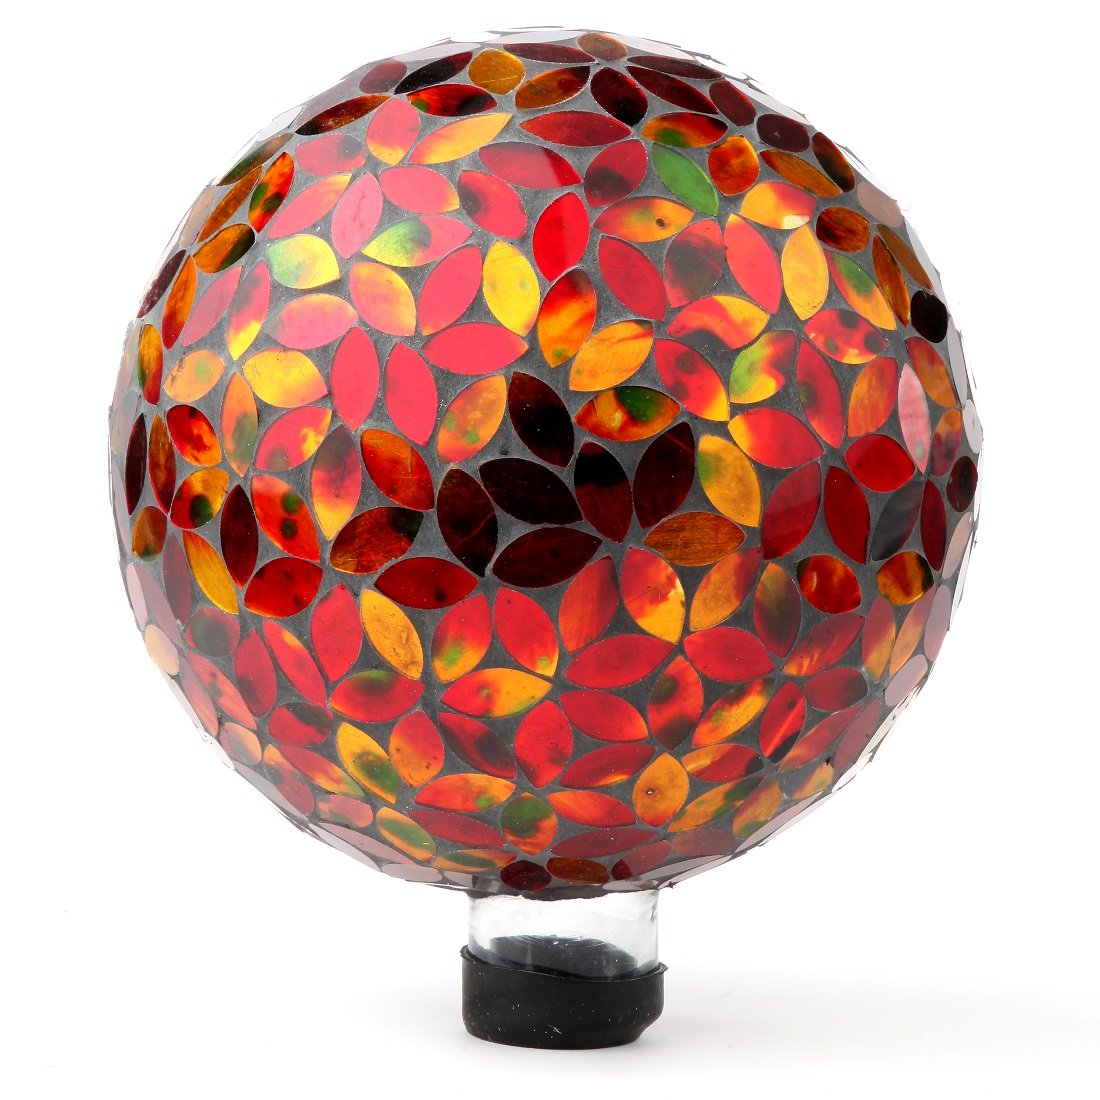 Lily's Home Colorful Mosaic Glass Gazing Ball, Designed with a Stunning Holographic Petal Mosaic Pattern to Bring Color and Reflection to Any Home and Garden, Red and Gold (10'' Diameter)